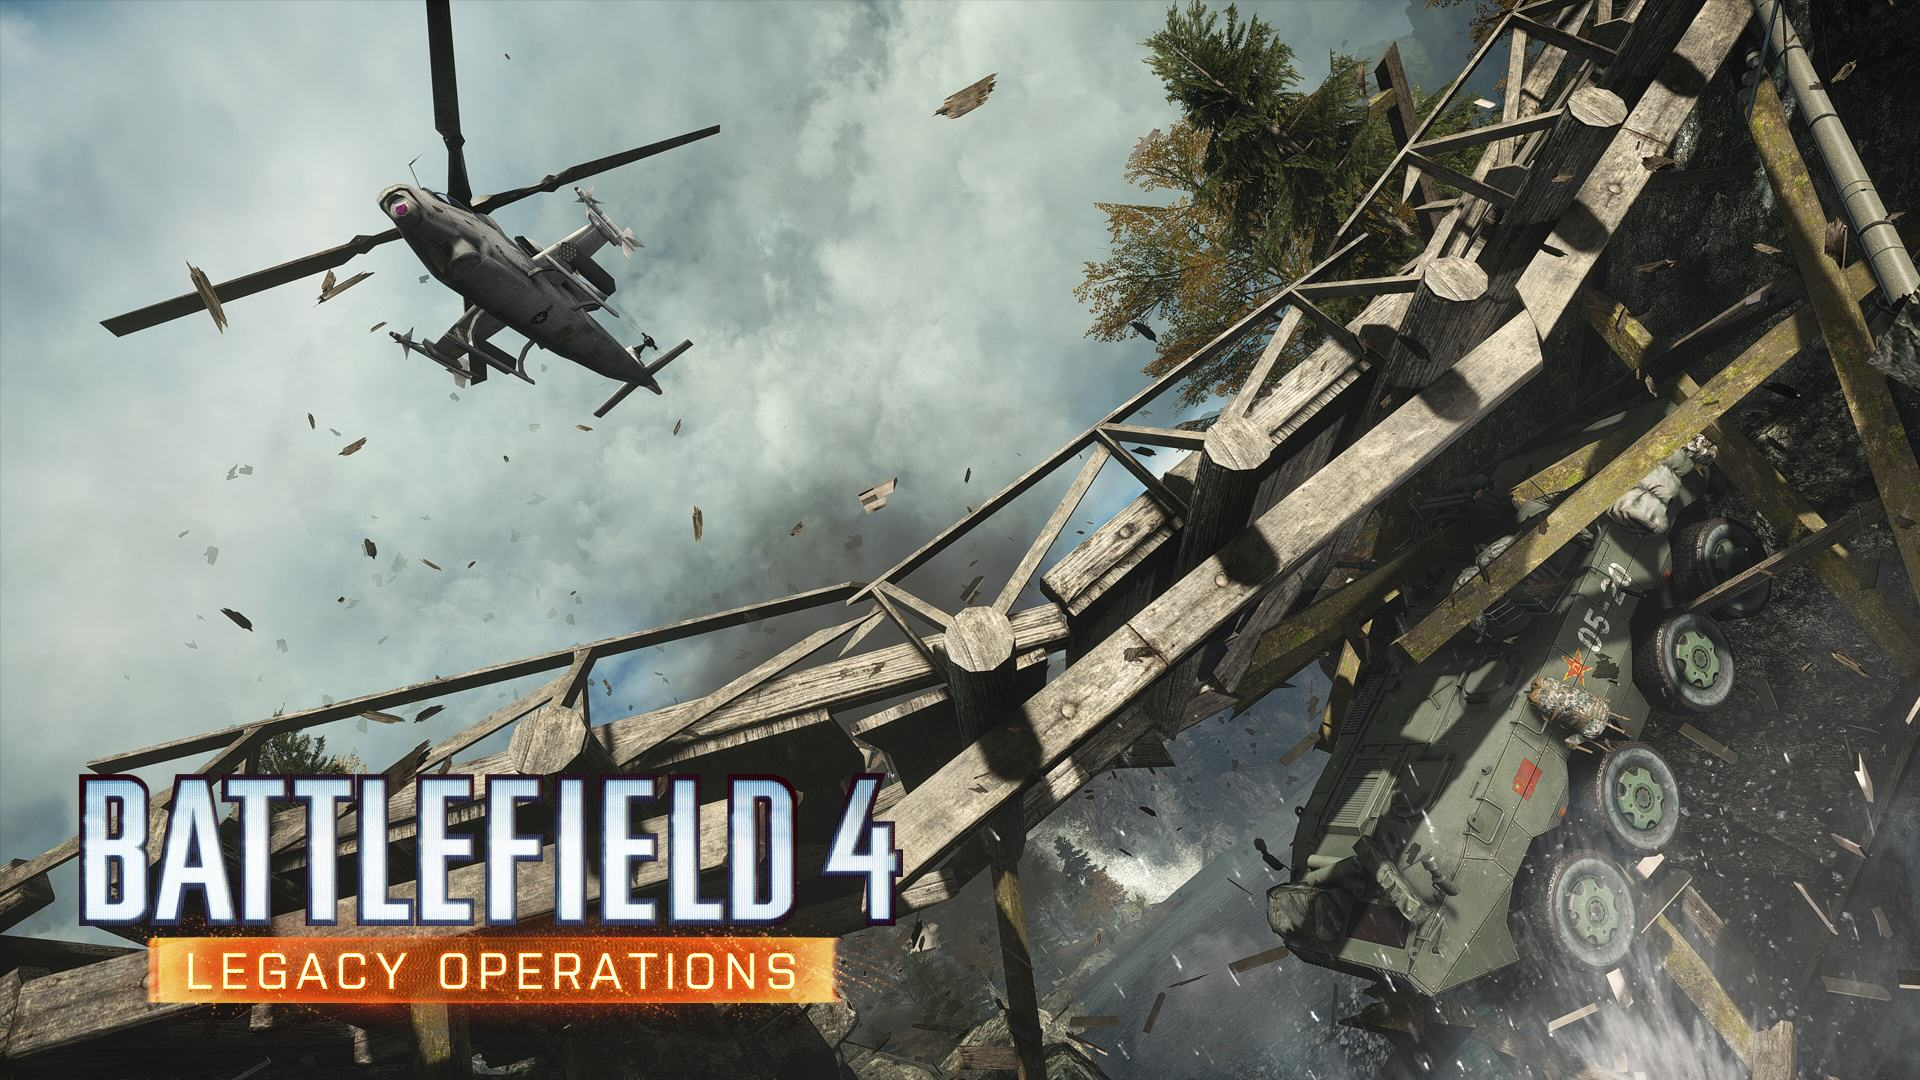 Battlefield 2 Map Coming To Battlefield 4 In Free DLC UNILAD bf4 legacyops thumbnail41805